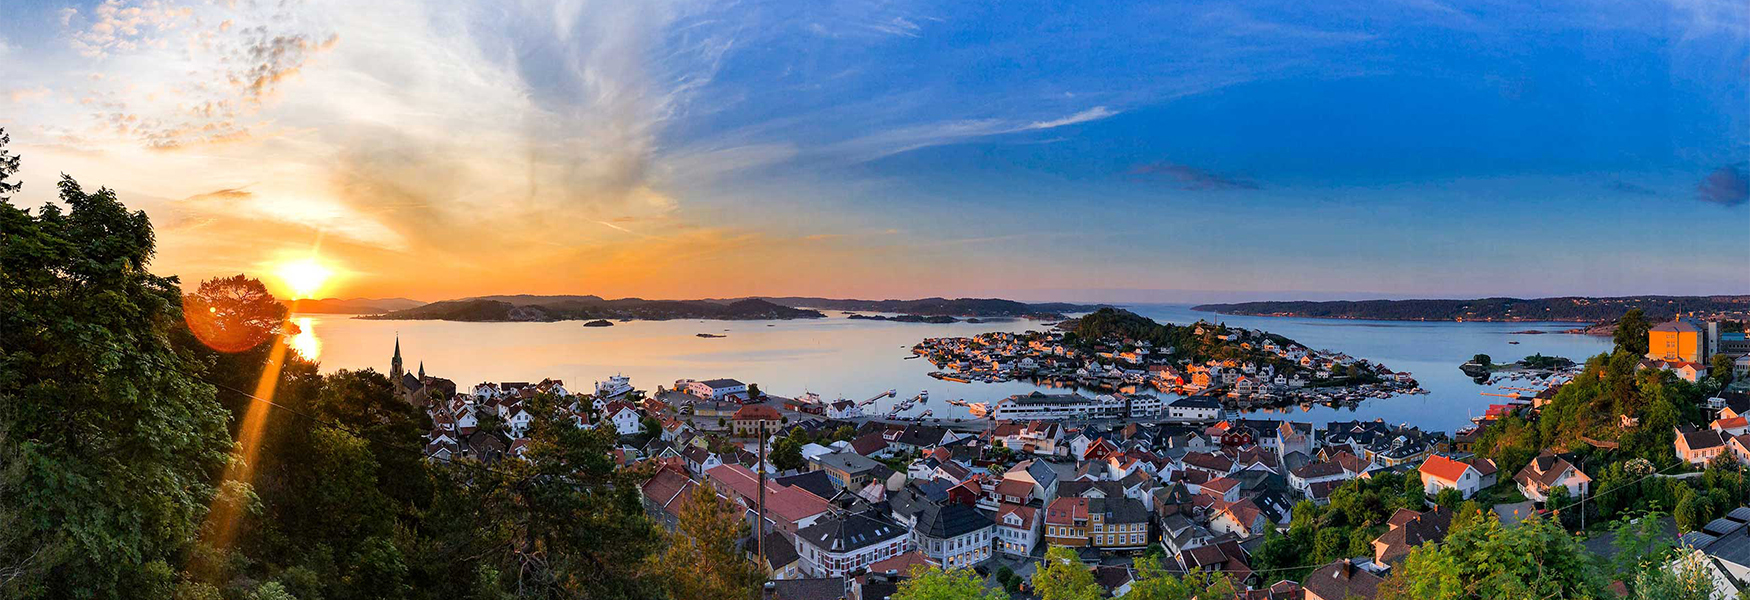 Welcome to Kragerø - The Pearl of the coastal towns!